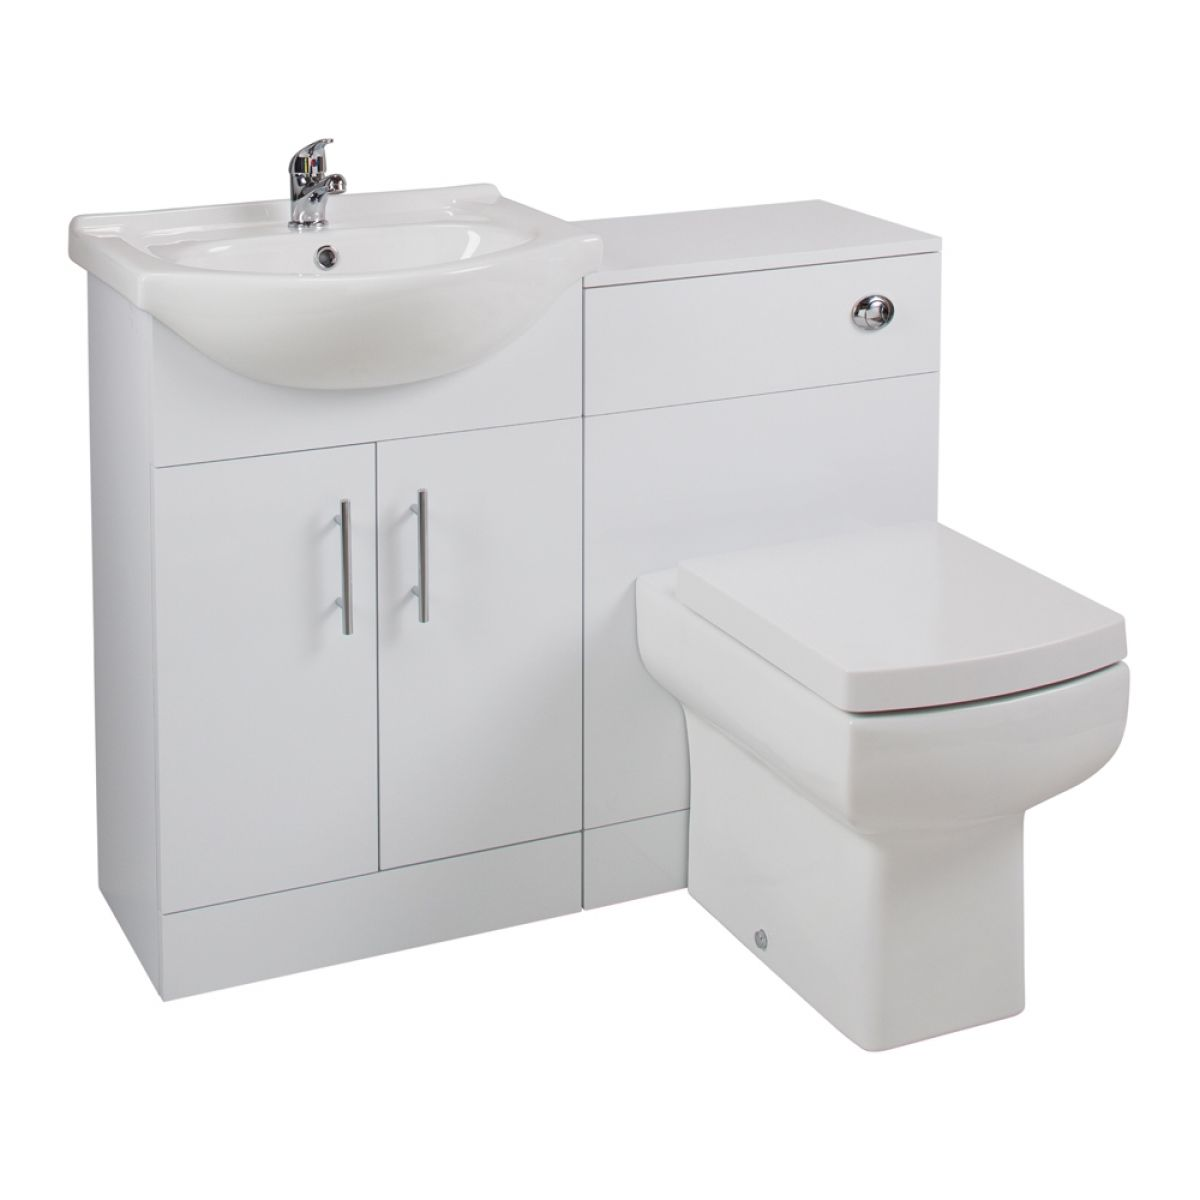 Cassellie Kass Series White Combination Unit with Daisy Lou Toilet